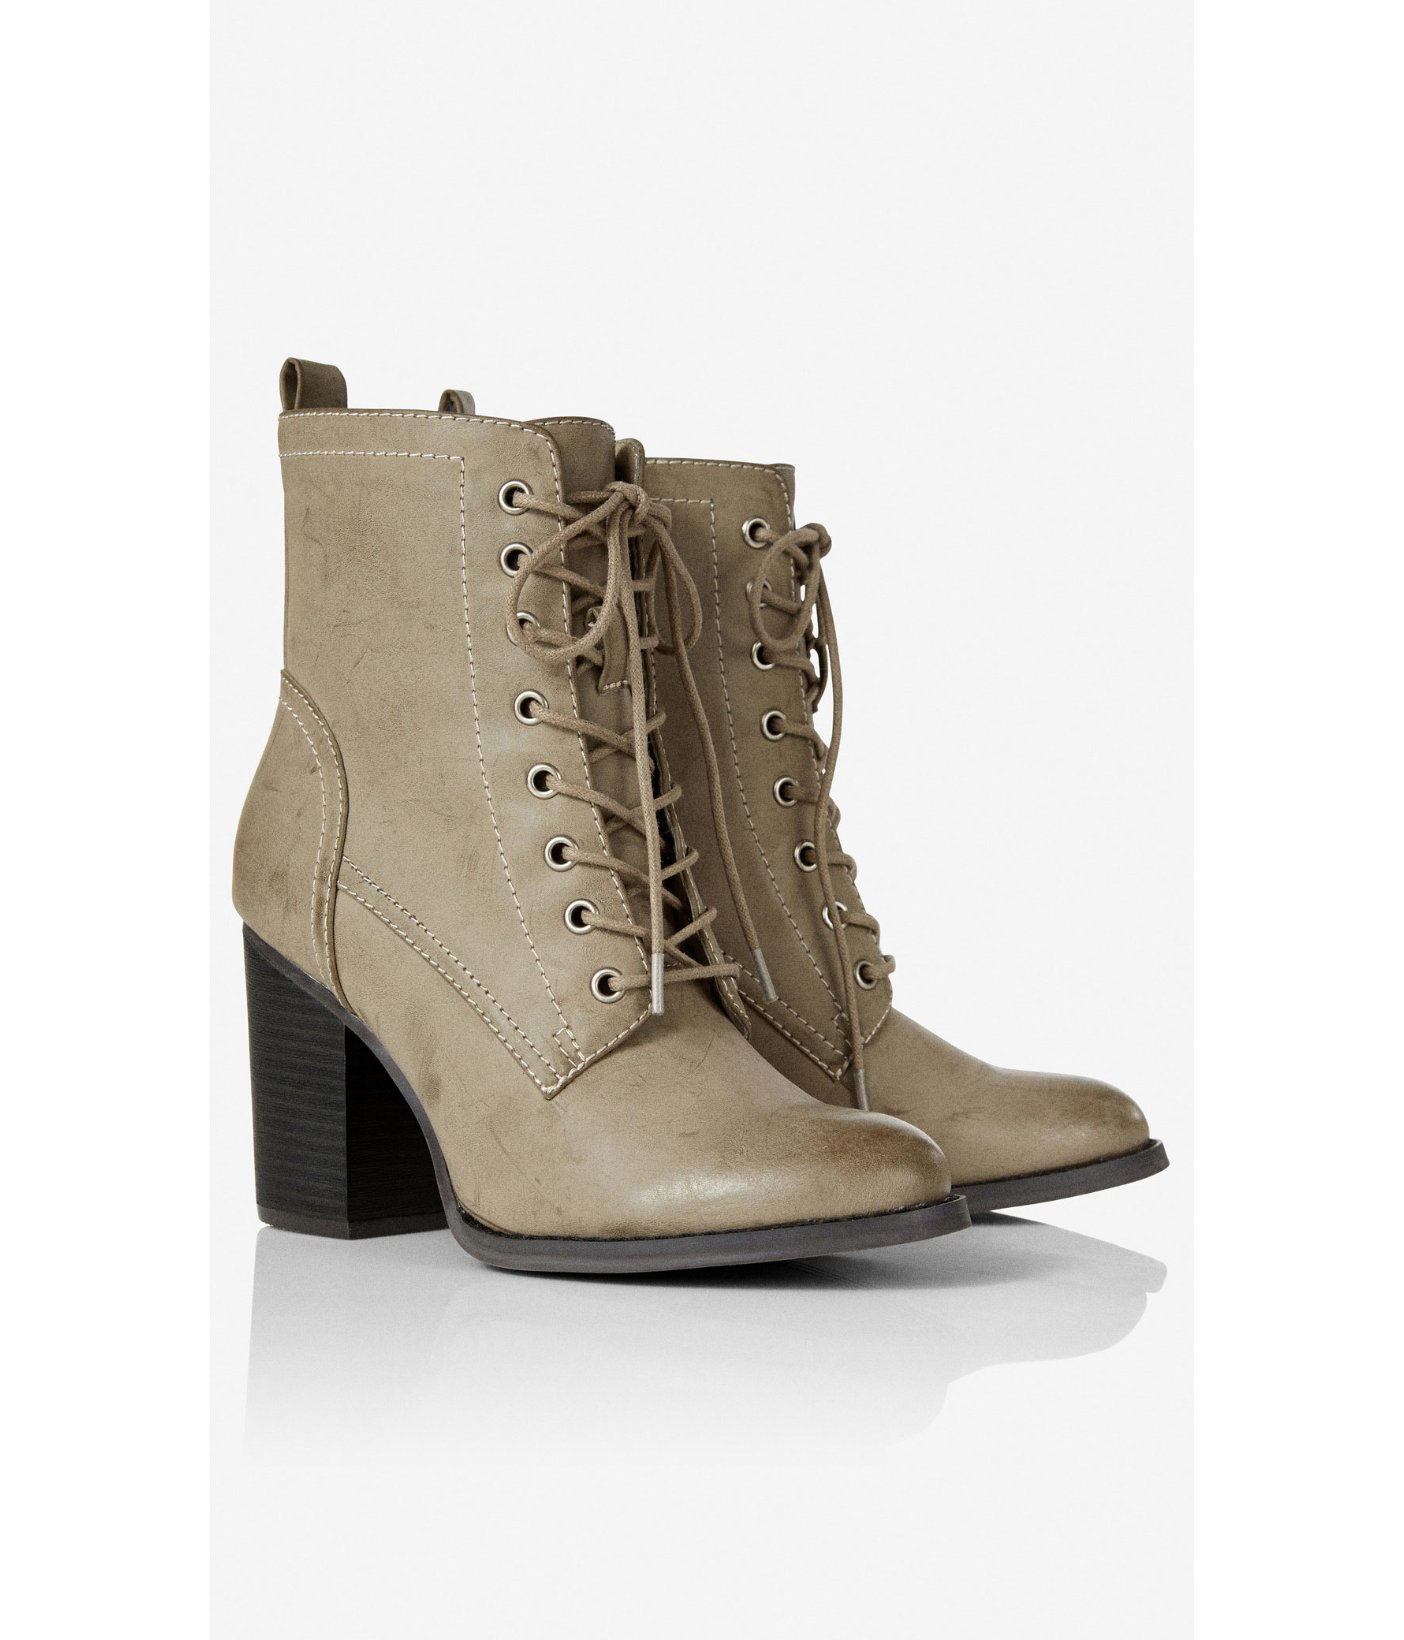 Express Lace-Up Heeled Boot in Grey